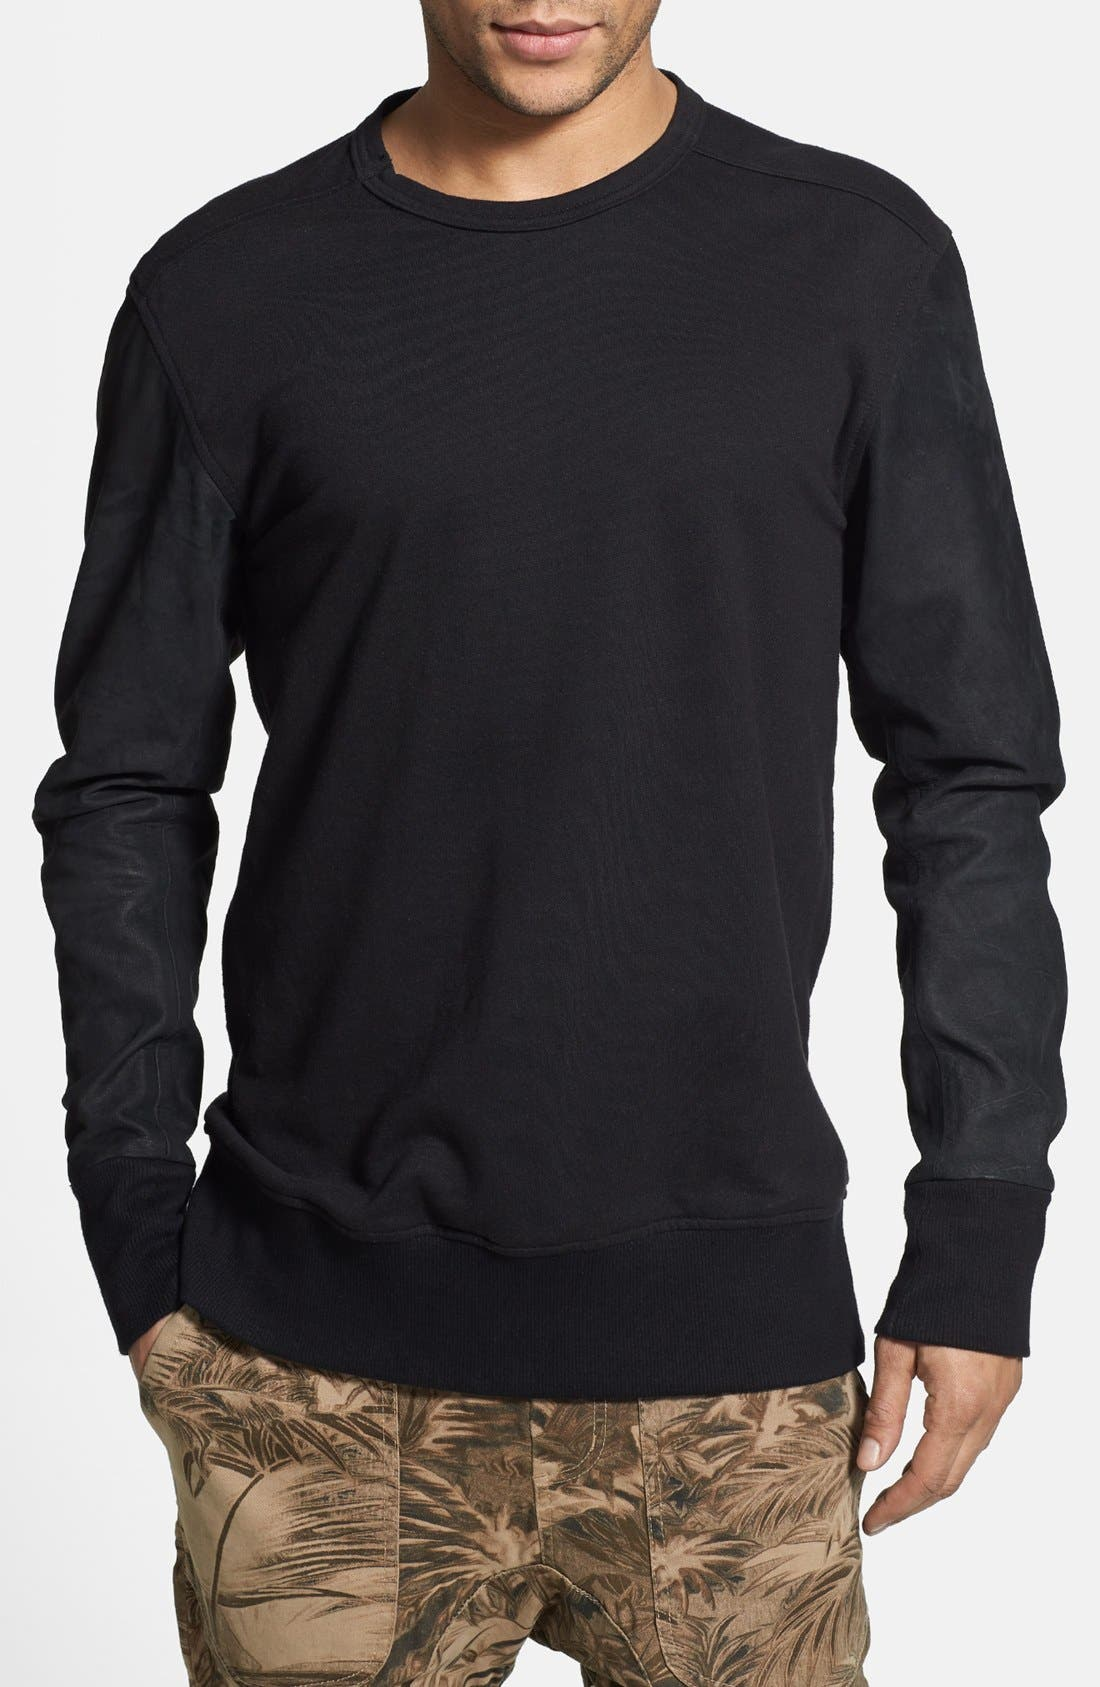 Alternate Image 1 Selected - ZANEROBE 'Primal' Crewneck Sweatshirt with Suede Sleeves